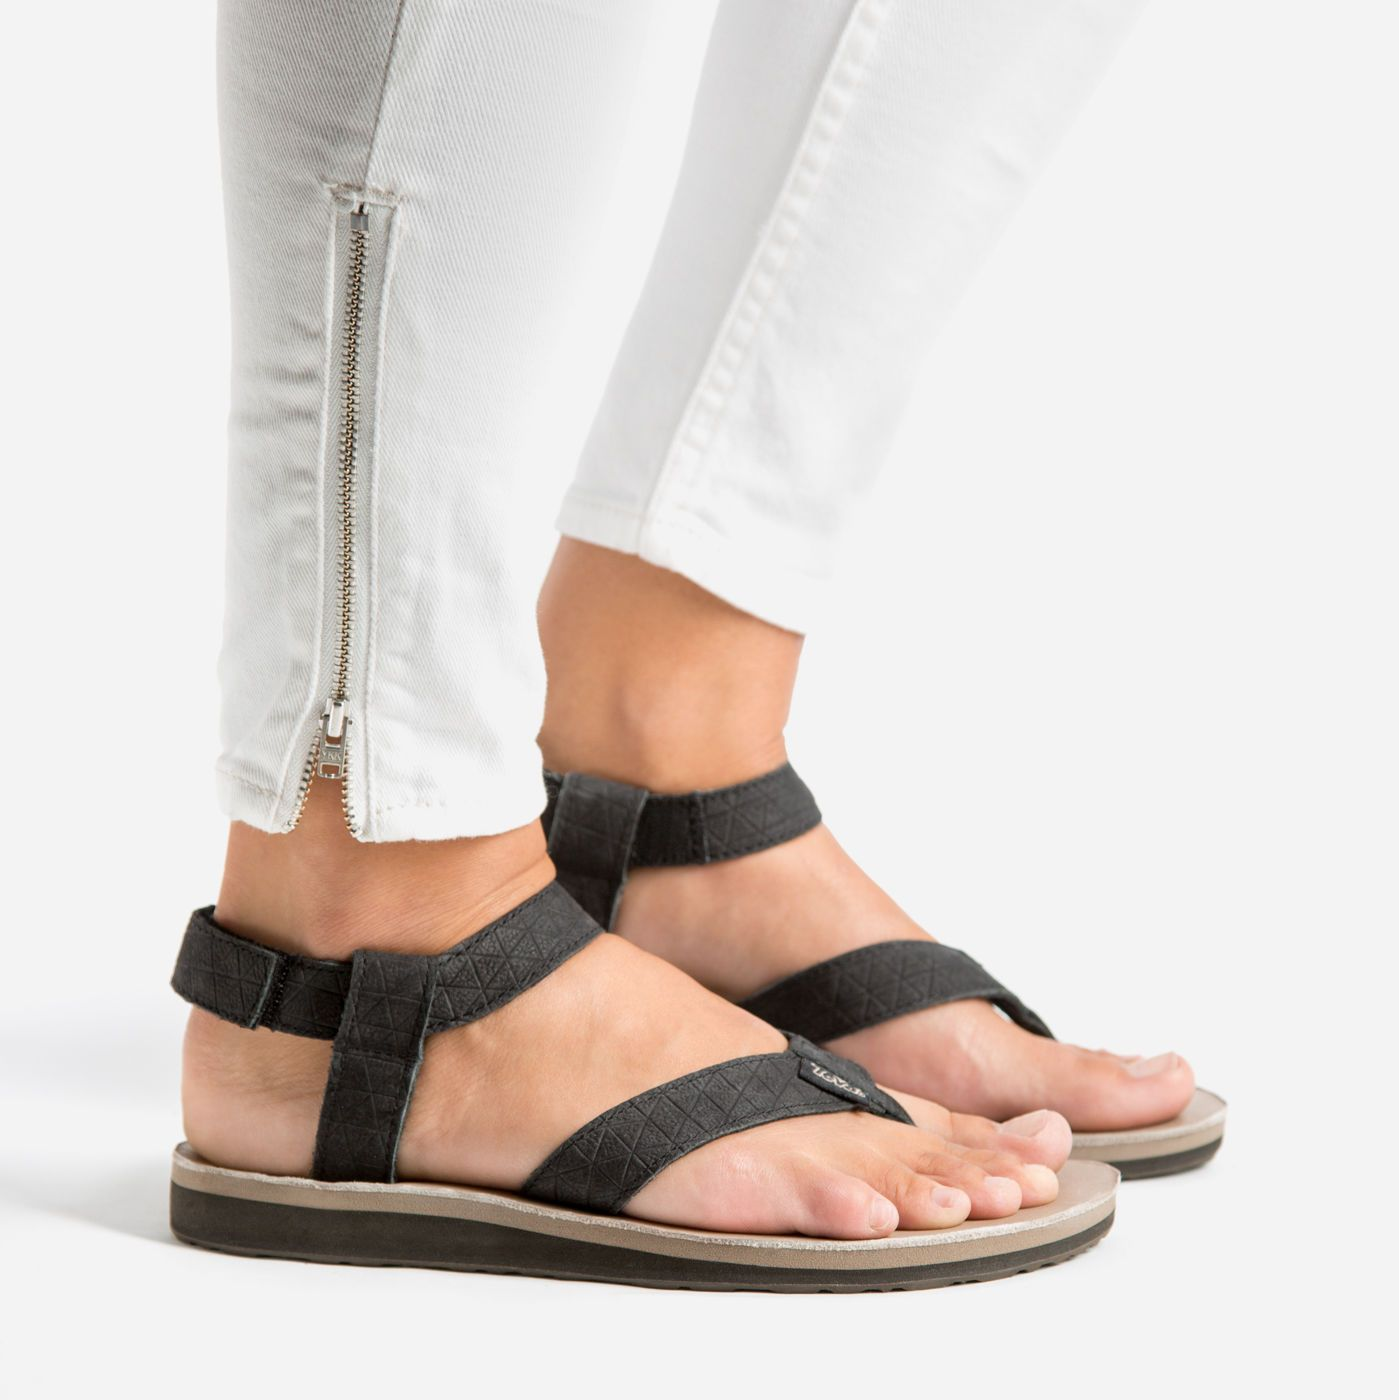 Original Teva Original Sandal Leather Diamond Sandals for Women on the  official Teva website Free standard delivery when you spend